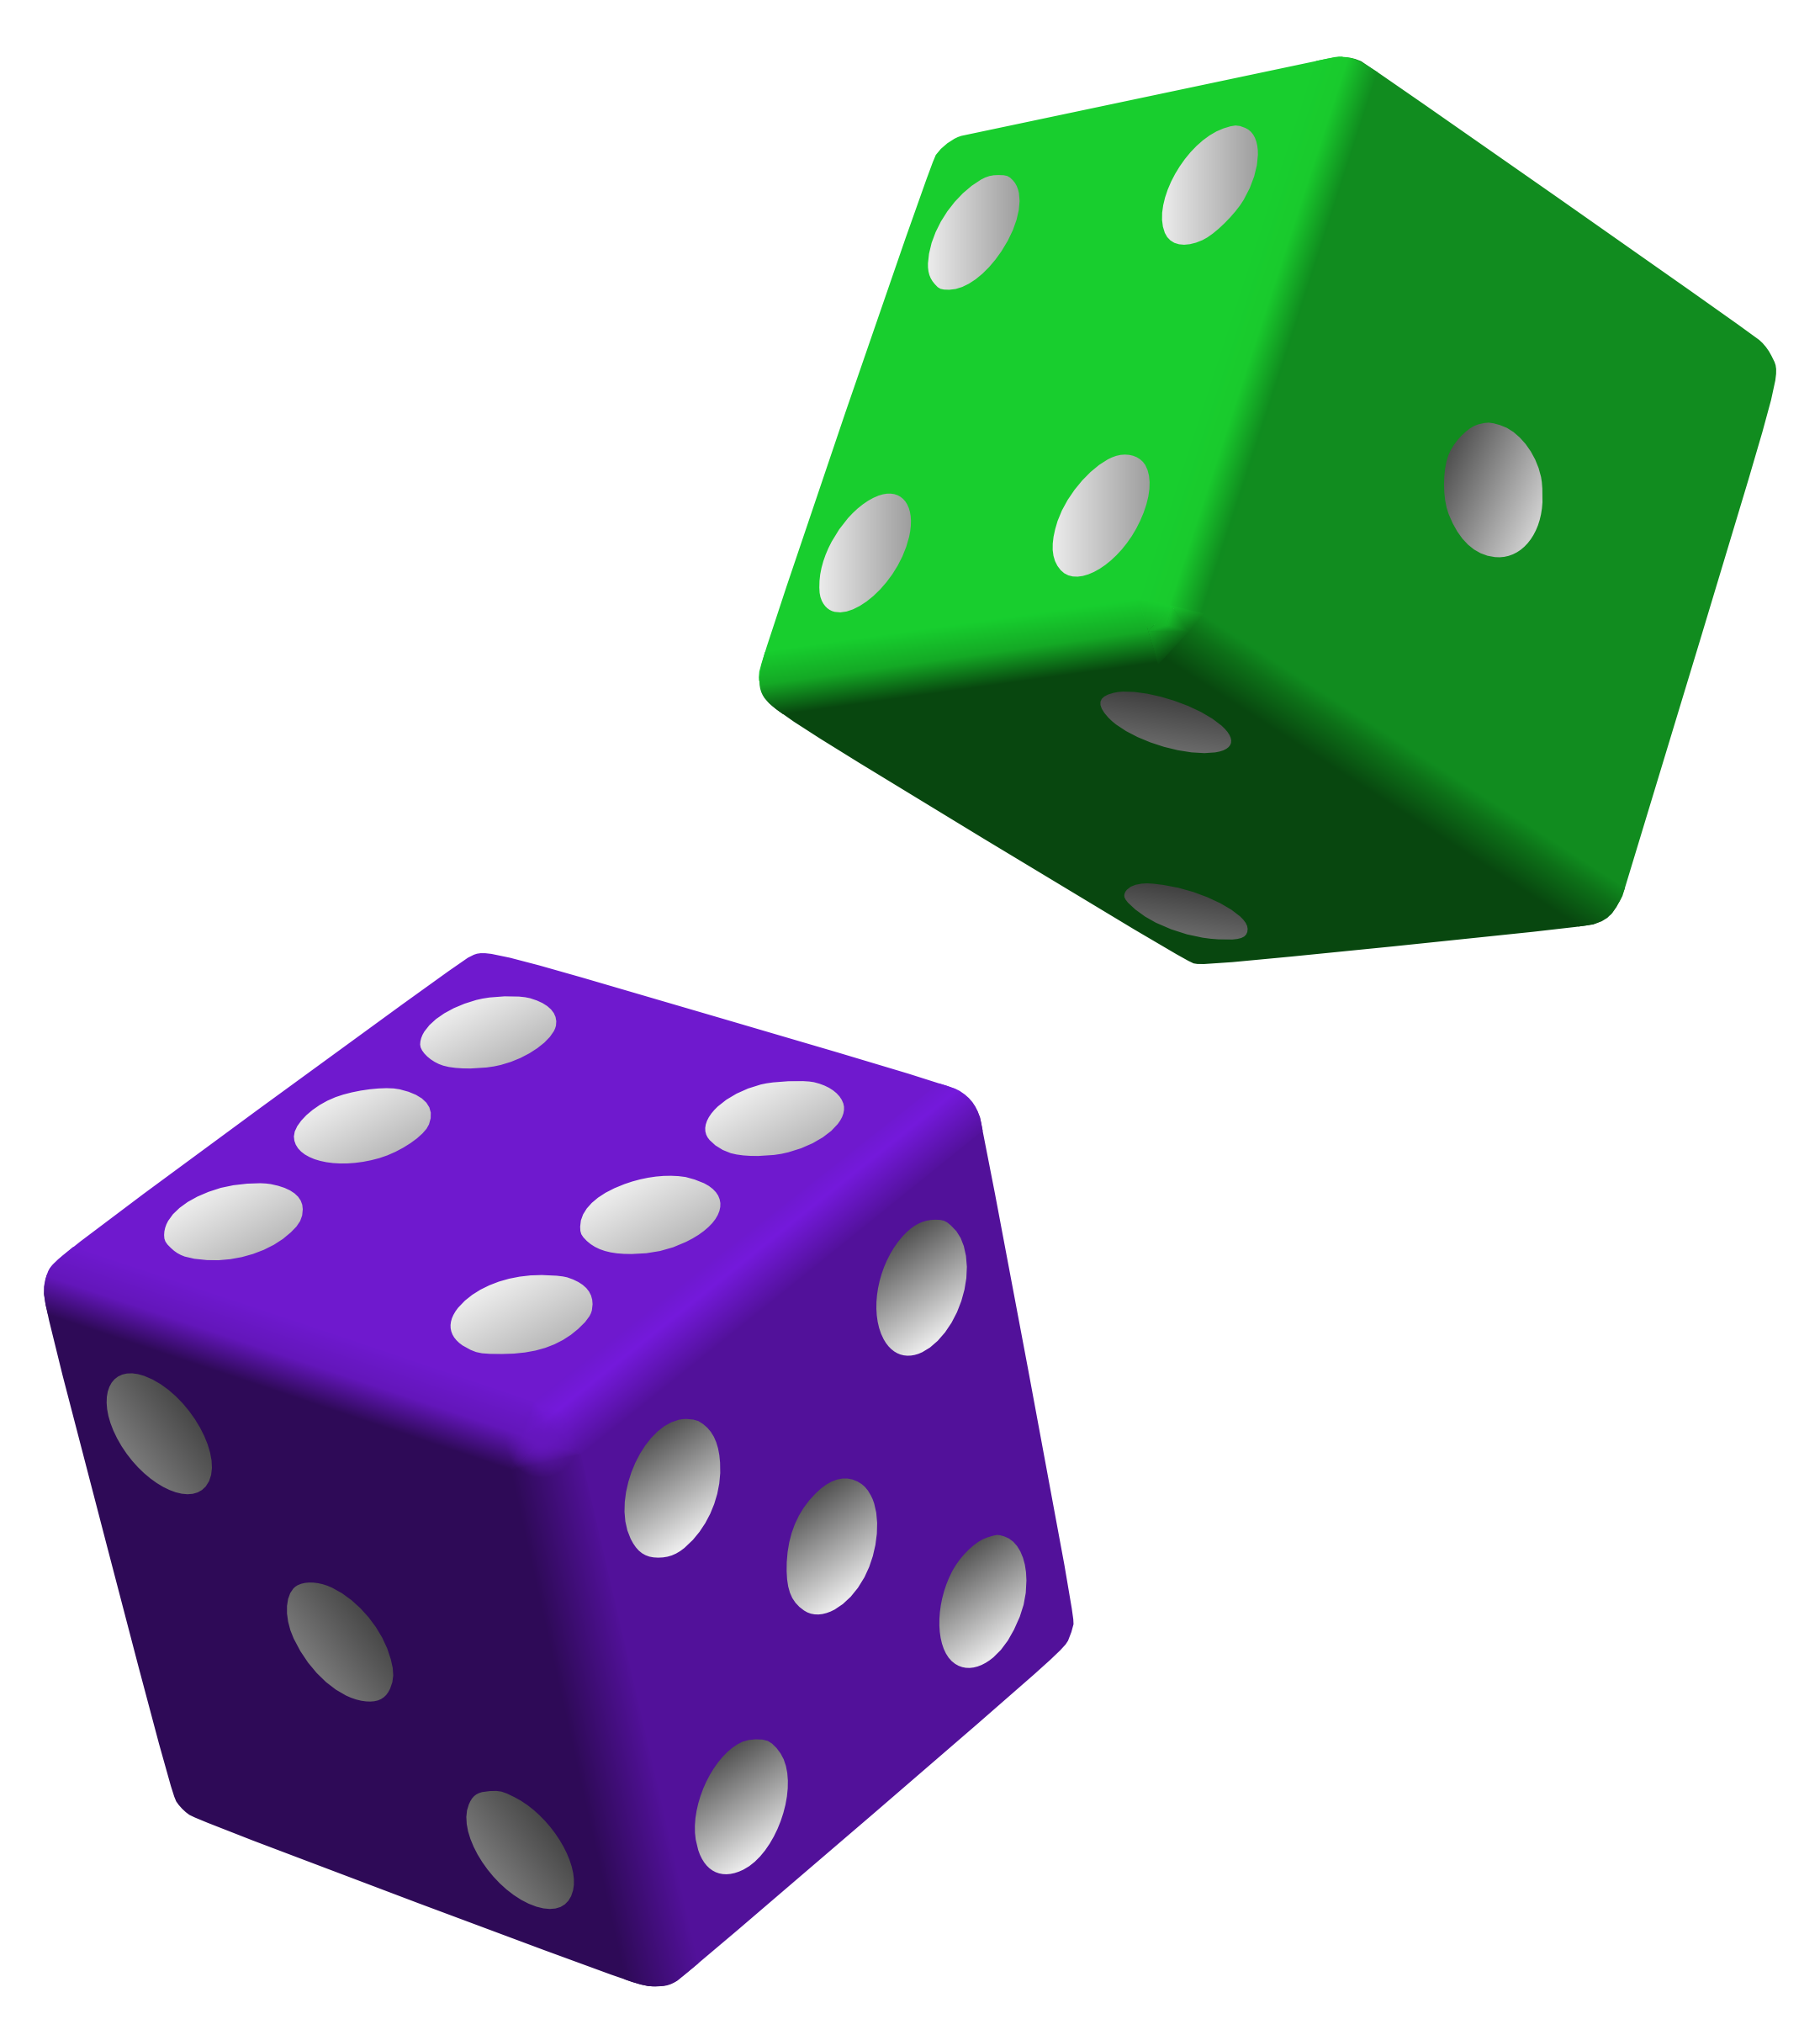 Dodge clipart team game Bunco%20dice%20clipart Clipart Free Clipart Images